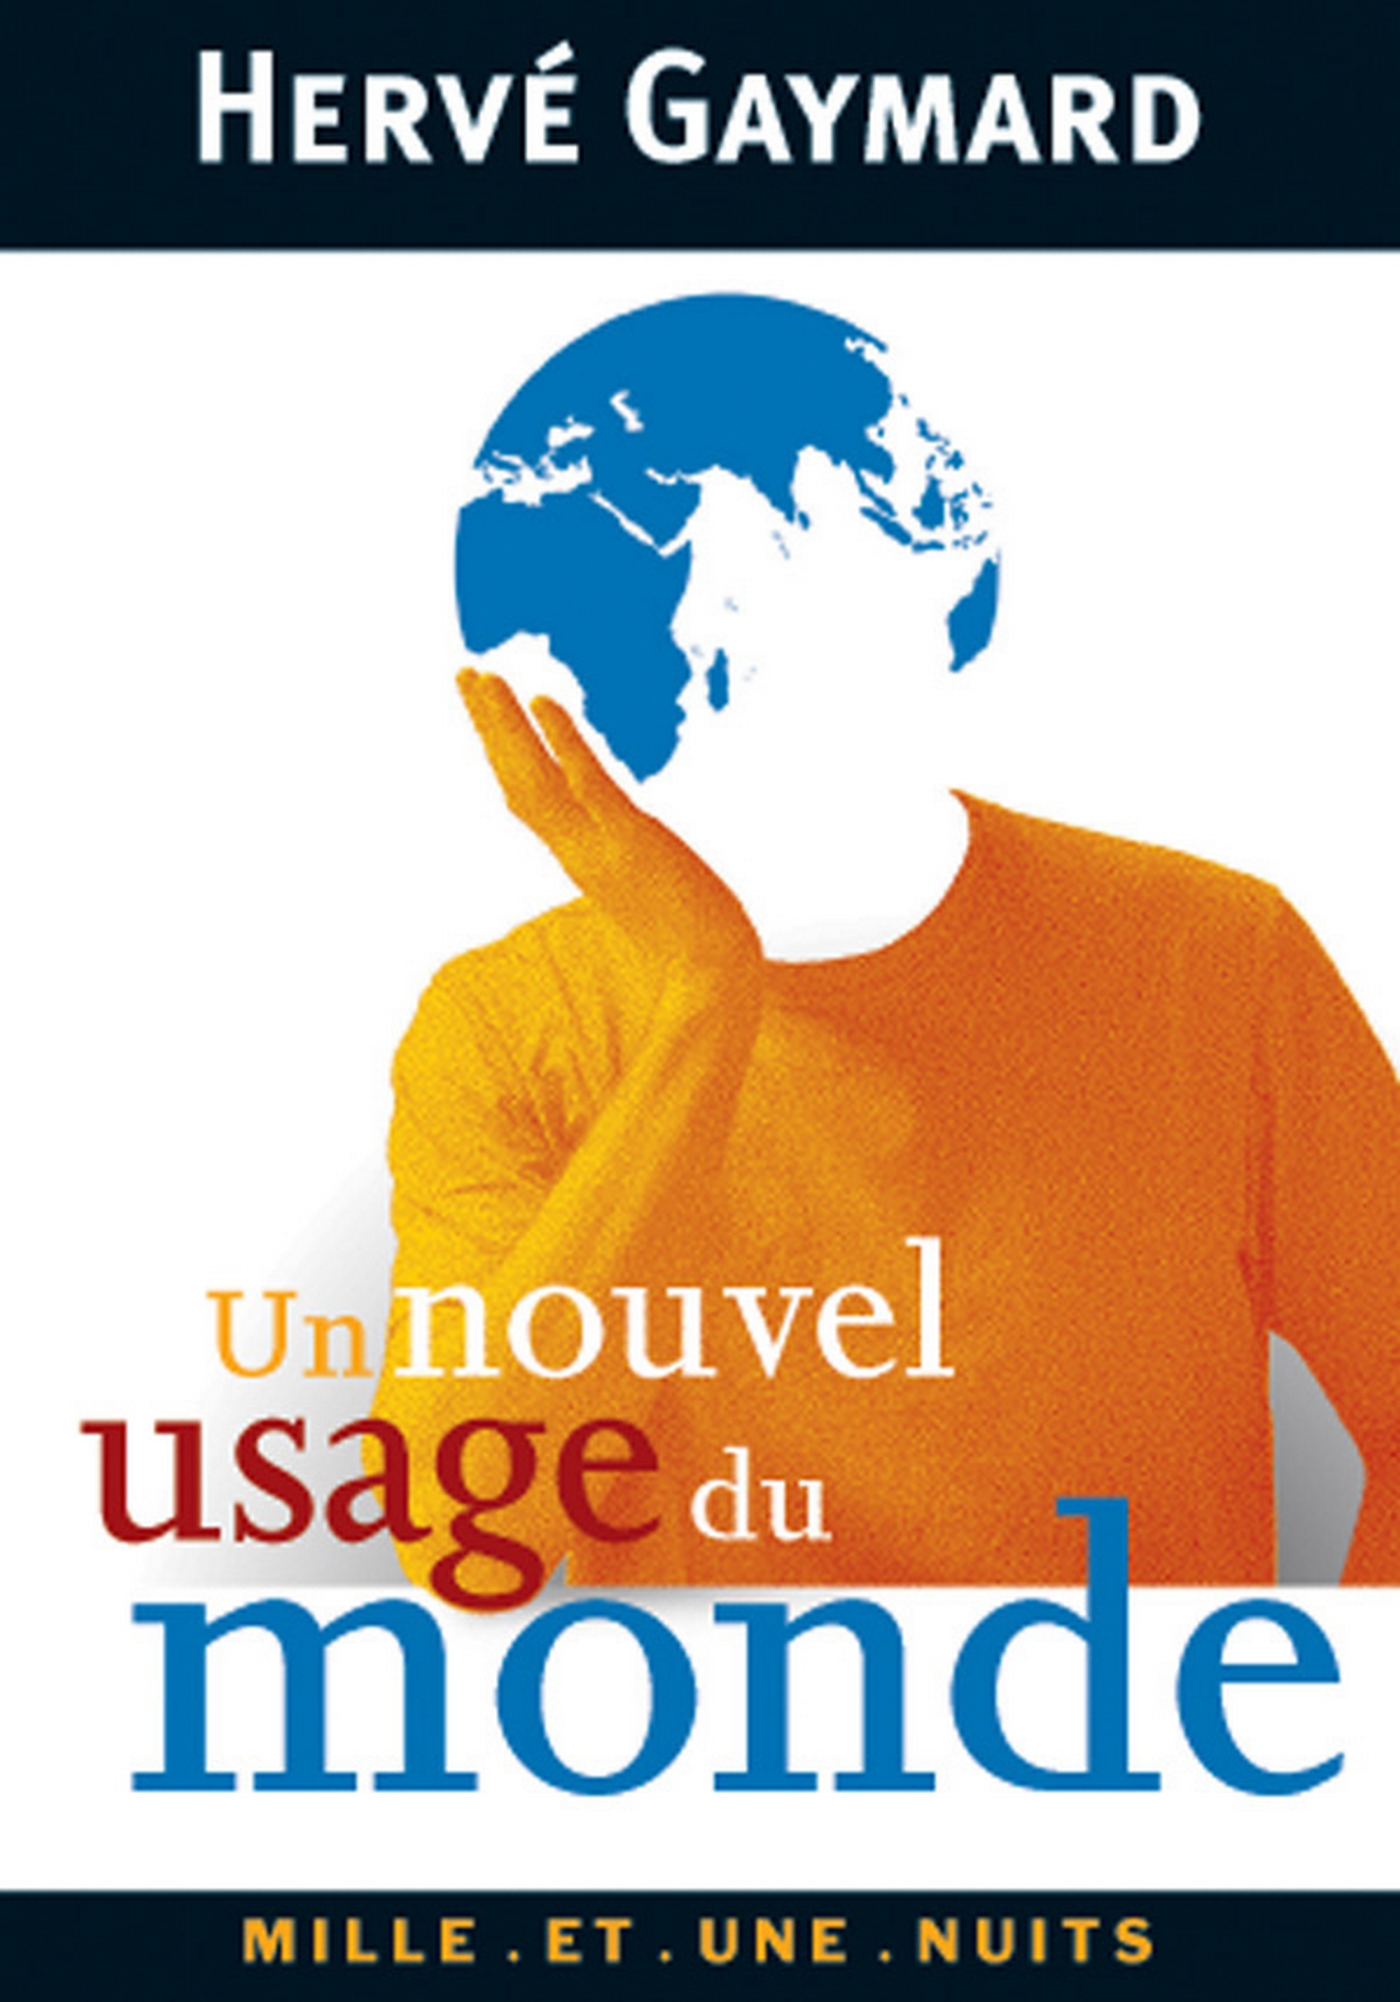 Un nouvel usage du monde